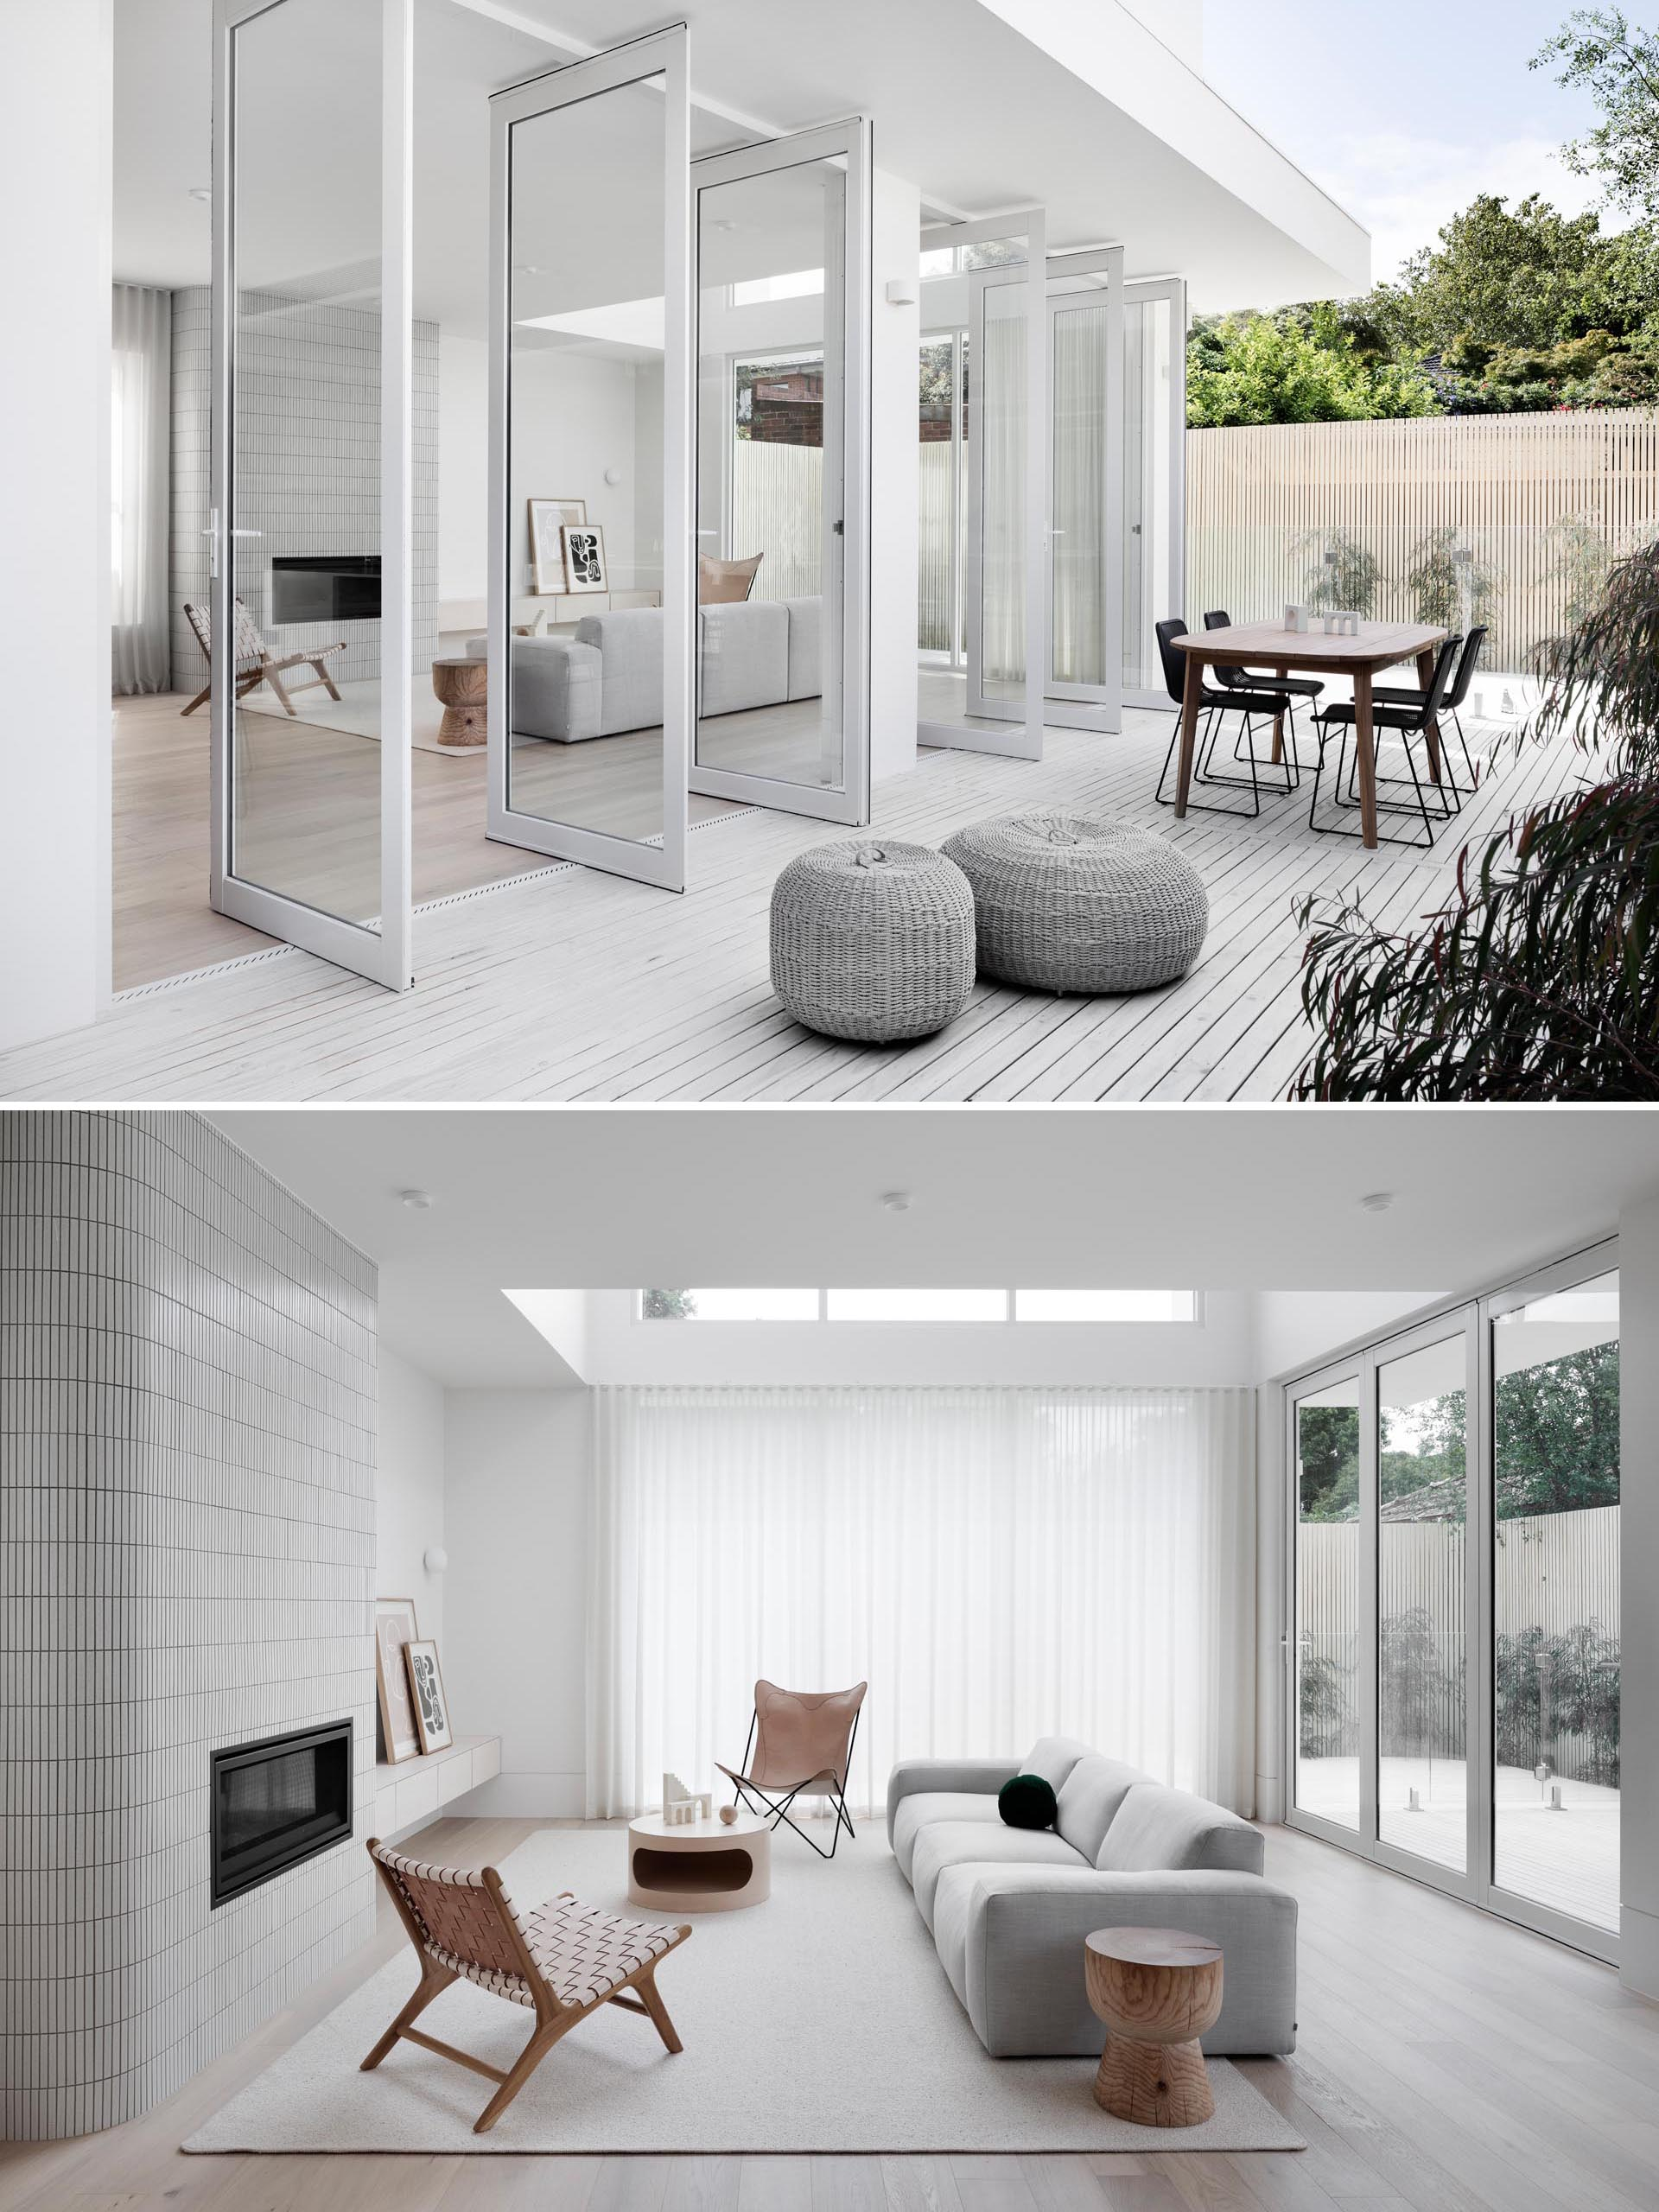 This modern house features pivoting glass doors, and and interior with a white tiled fireplace surround in the living room, a dining room with a light wood table, and a kitchen with minimalist cabinets and a white island.